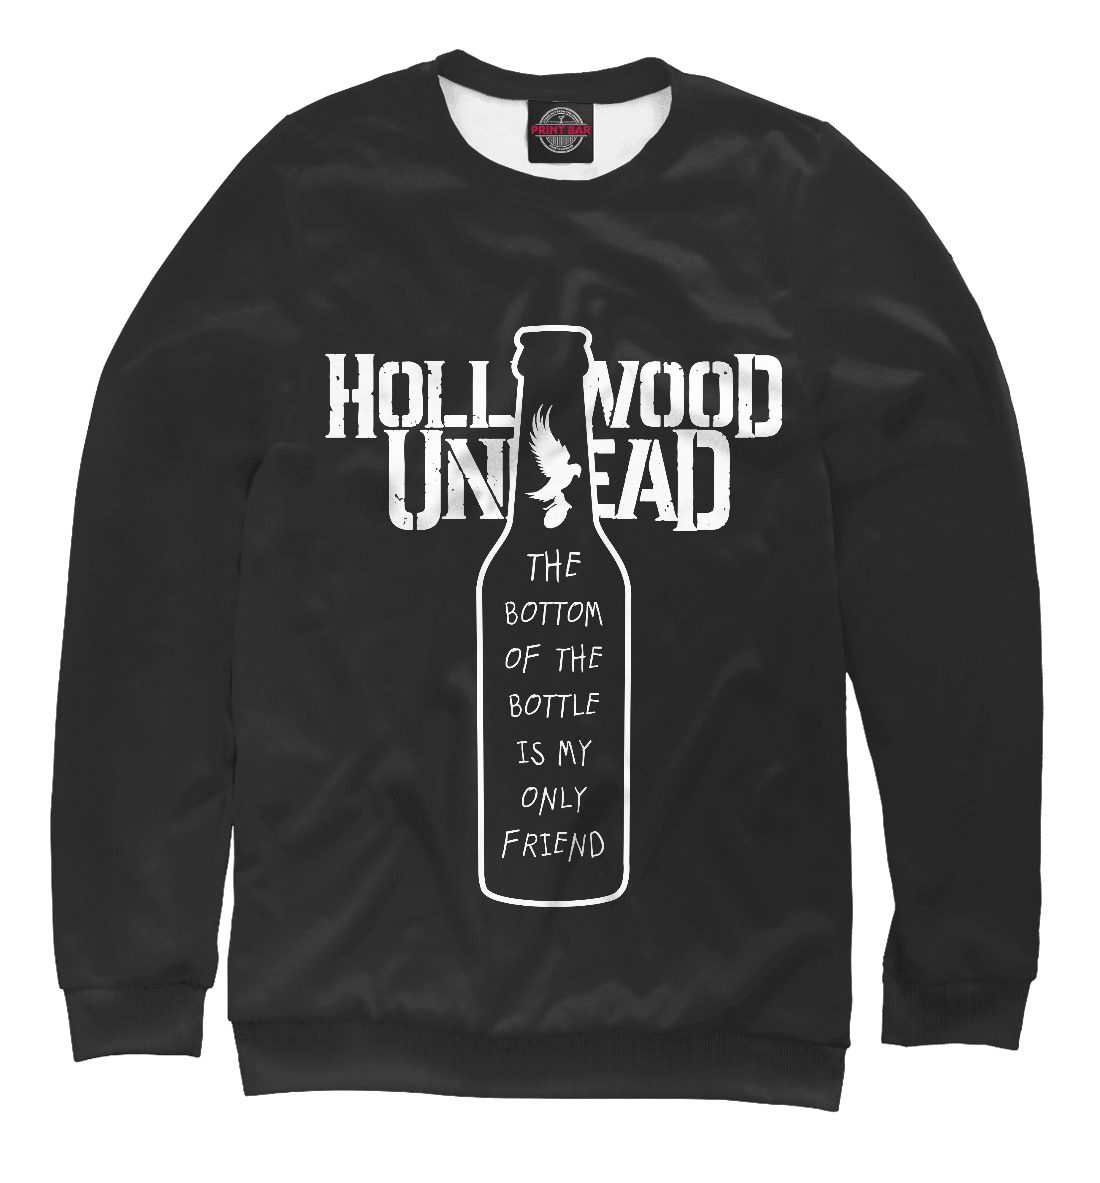 Купить Hollywood Undead Bullet lyrics, Printbar, Свитшоты, HLW-460040-swi-2